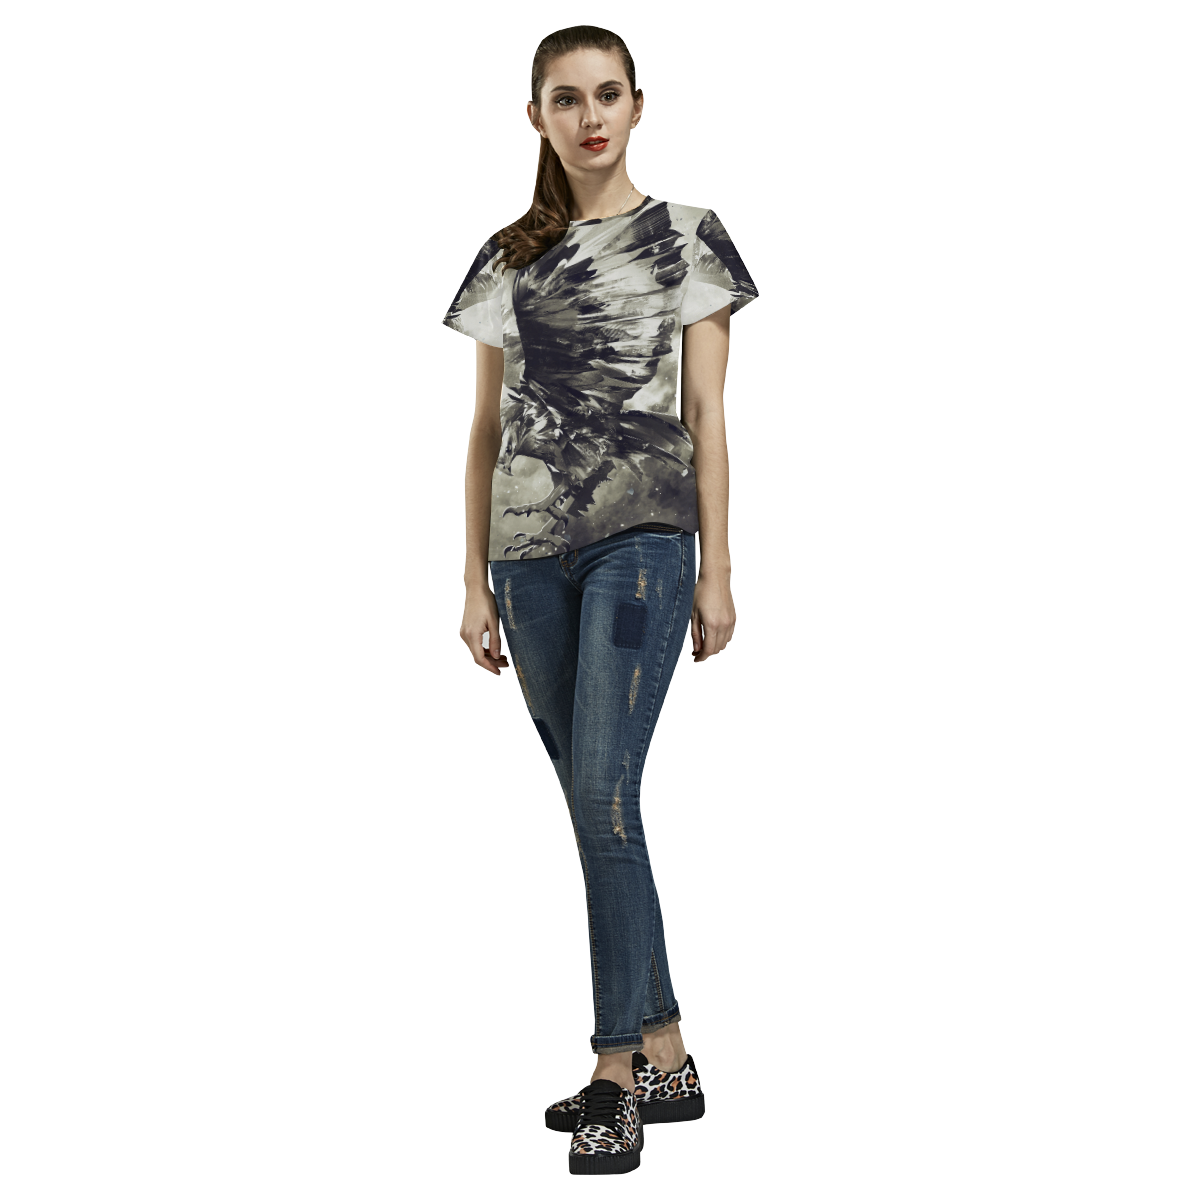 Eagle Bird Animal All Over Print T-Shirt for Women (USA Size) (Model T40)